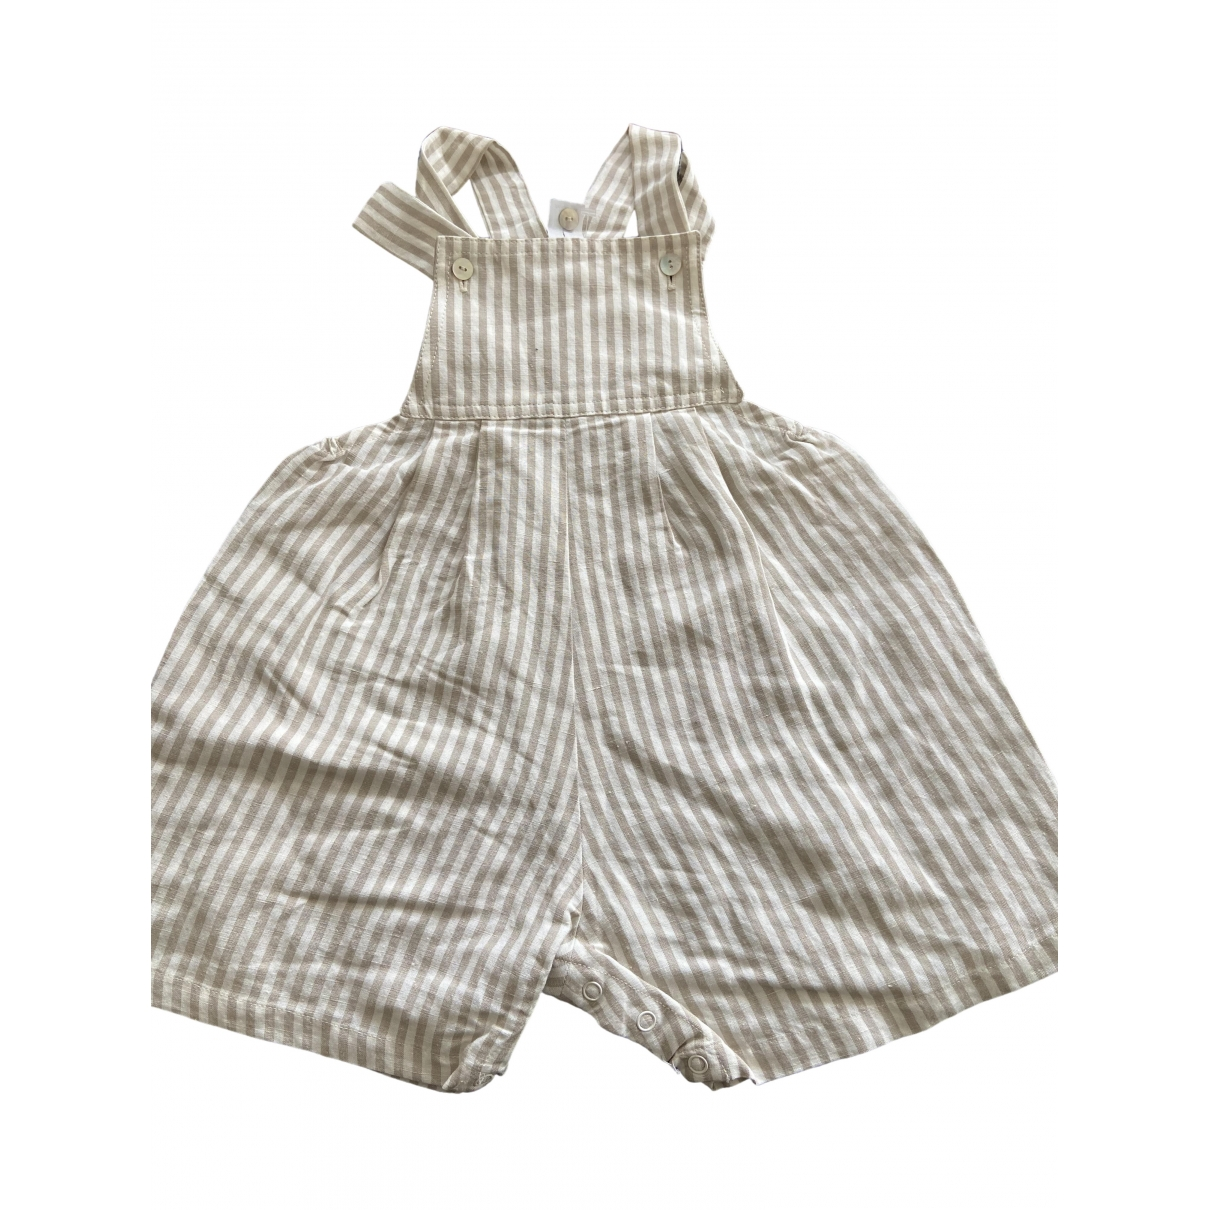 Bonpoint \N Beige Cotton Shorts for Kids 2 years - up to 86cm FR